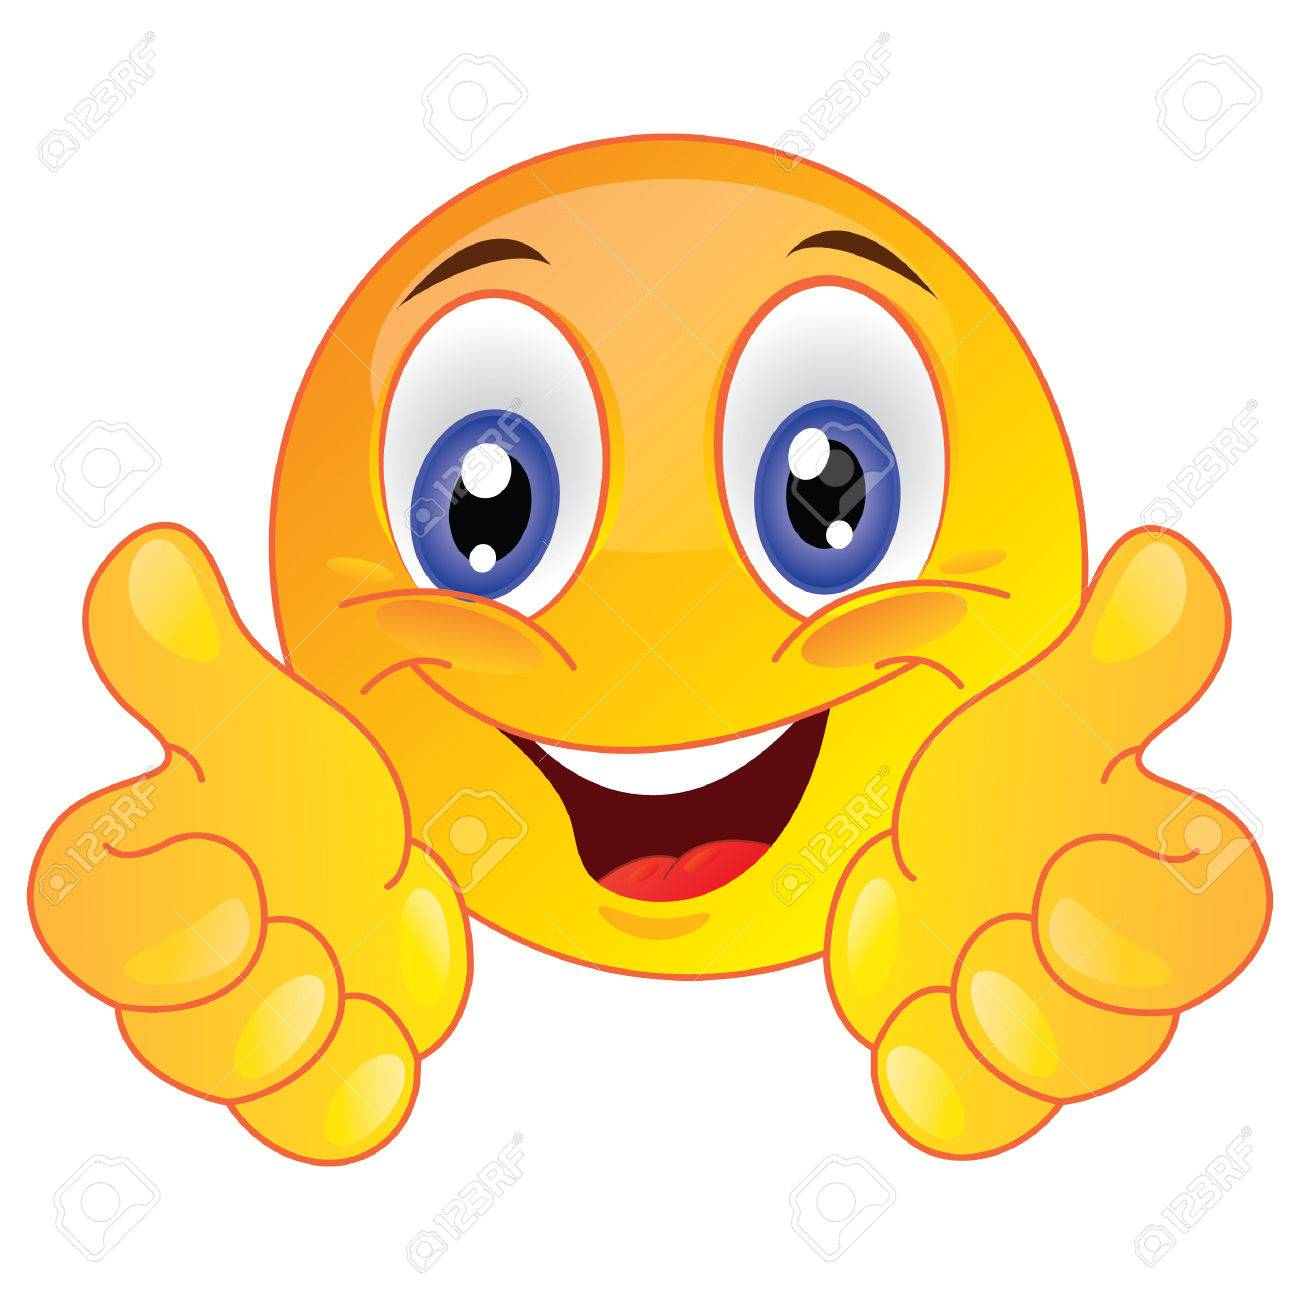 smiley face showing thumbs up royalty free cliparts vectors and